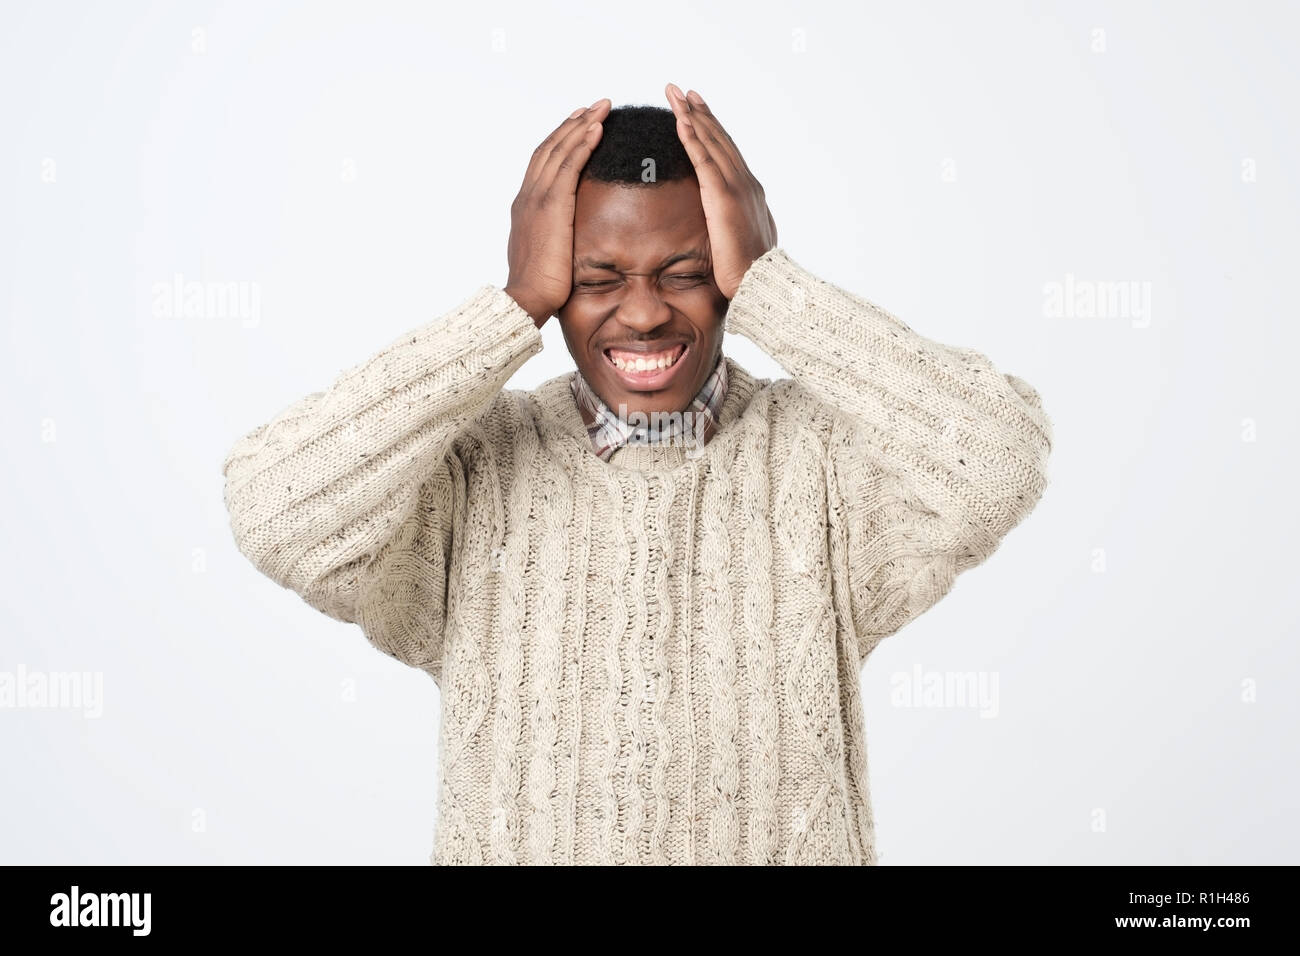 Annoyed african american man in sweater in panic, shocked to hear bad news. Stressful situation concept. - Stock Image